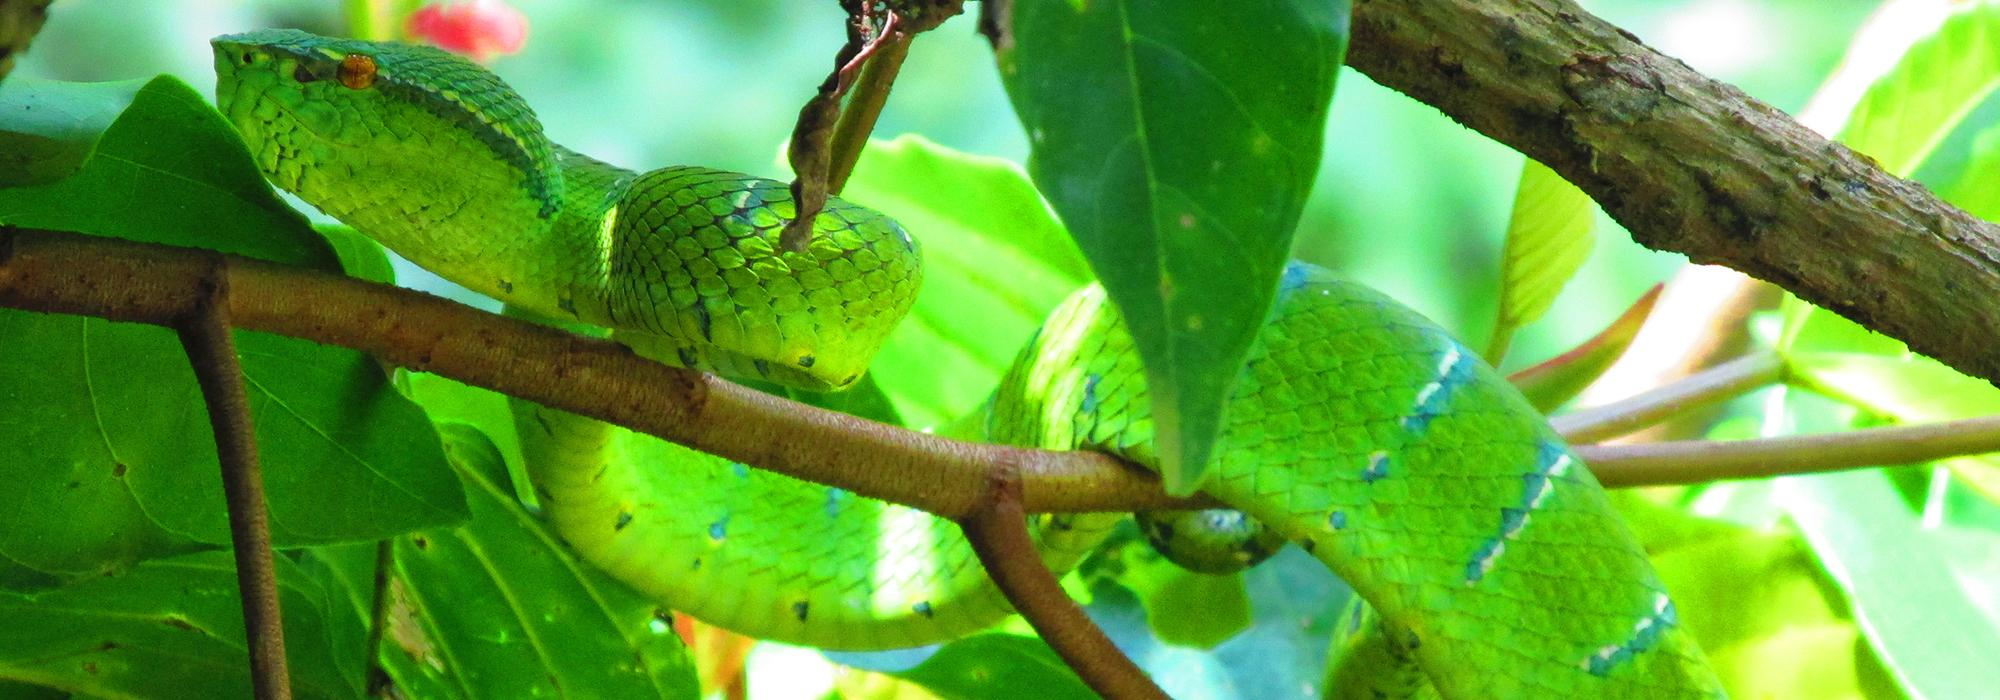 A deadly pit viper sitting motionless in a tree - Photo: © Henry Grub